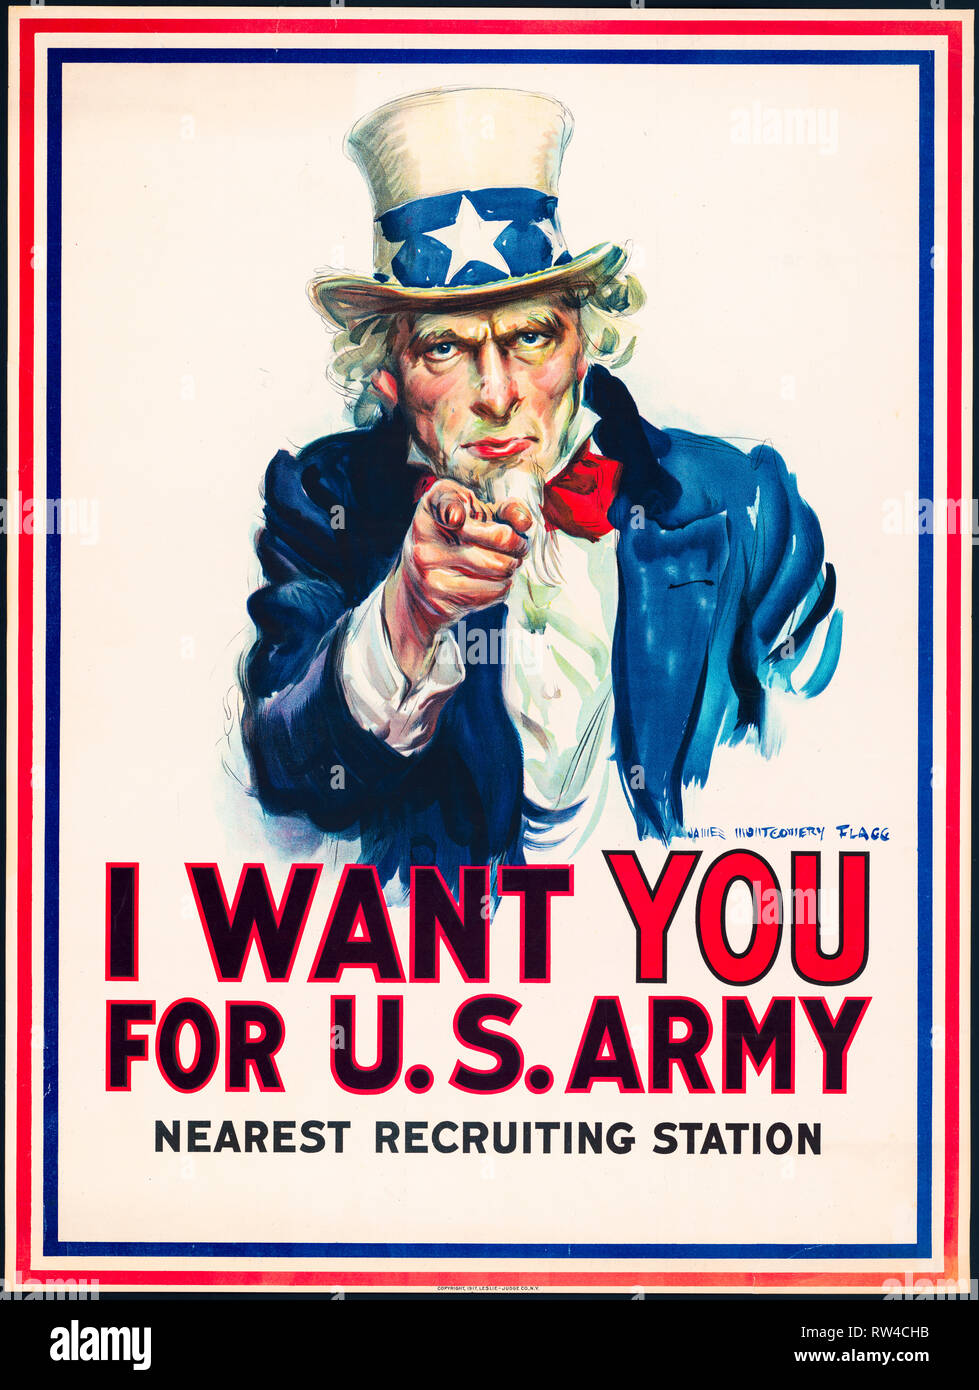 I want you for U.S. Army, Uncle Sam, US Army World War 1 recruitment poster, 1917 - Stock Image